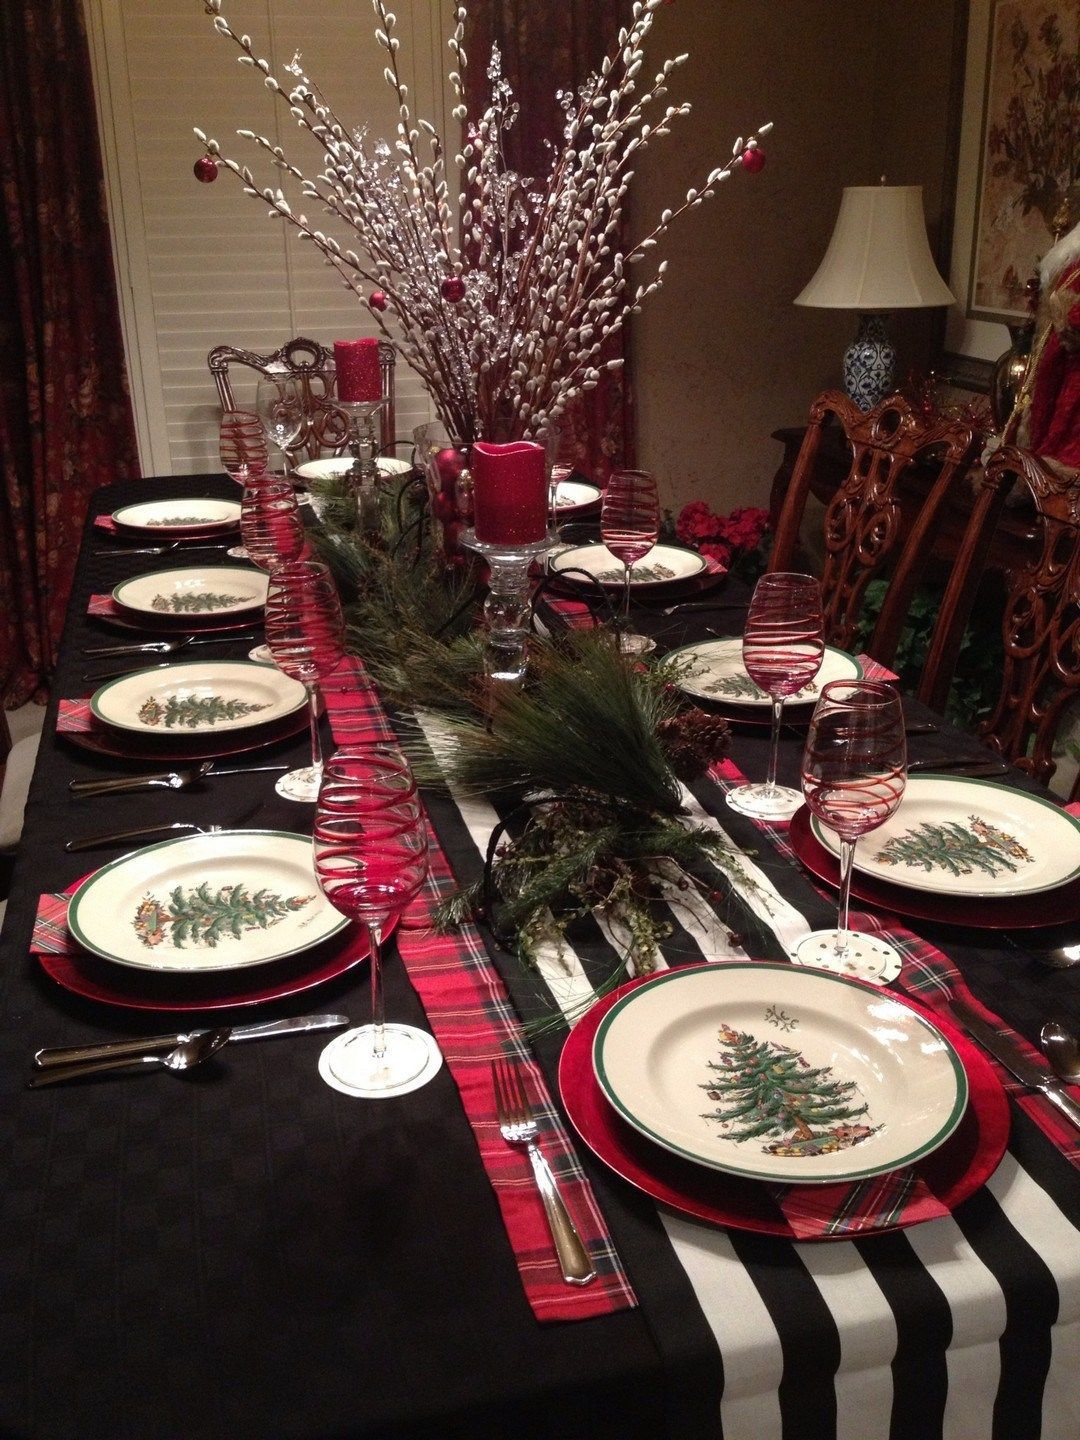 Gorgeous Holiday Christmas Tablescapes Ideas (1) christmasisland #homeforchristmas #plaidchristmas #christmas2019 #countrychristmas #outdoorchristmas #christmasstyle #merrychristmas #christmasholidays